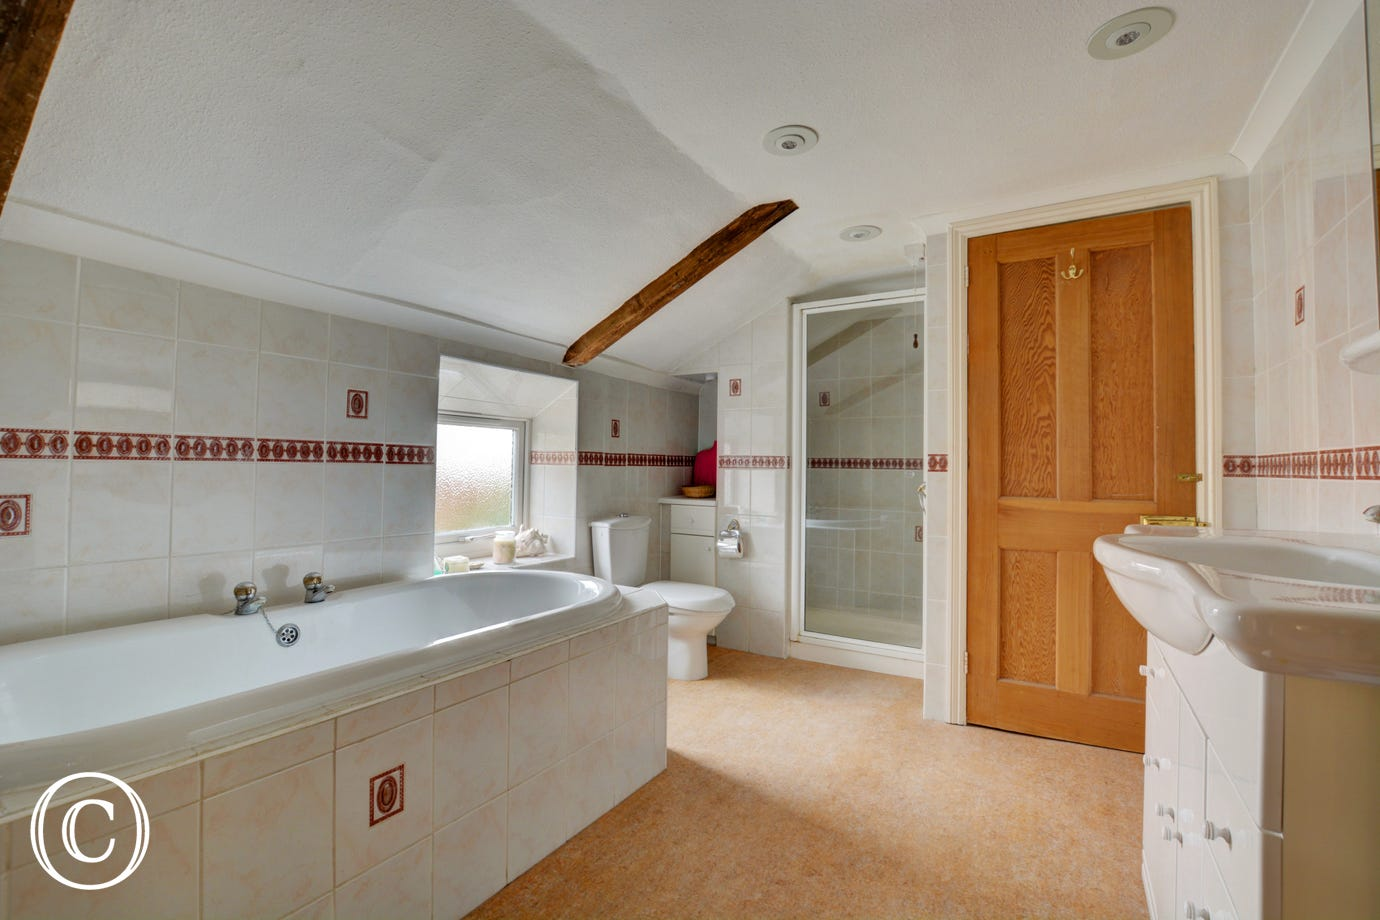 Modern and bright bathroom with bath and separate shower cubicle